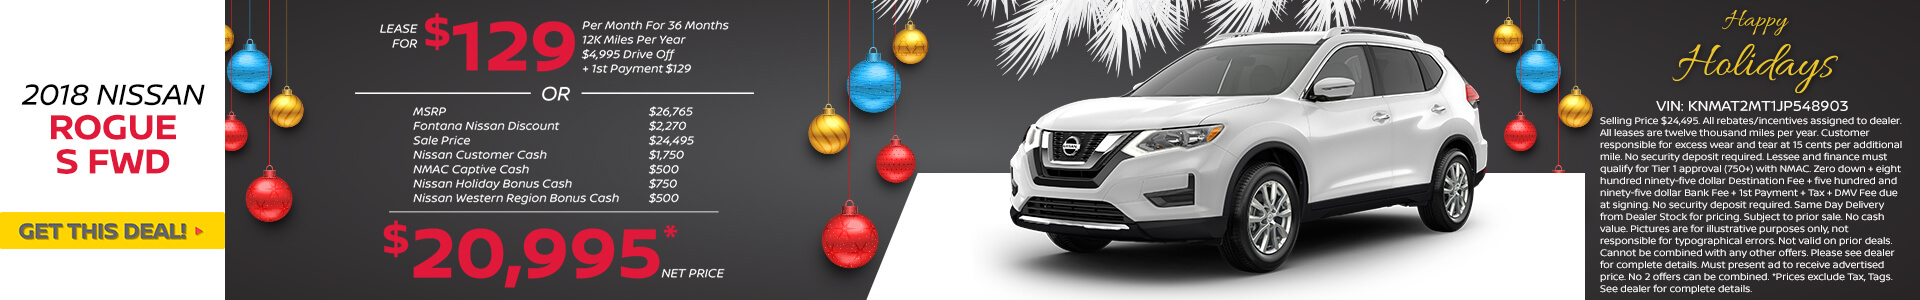 Nissan Rogue $129 Lease or $20,995 Purchase